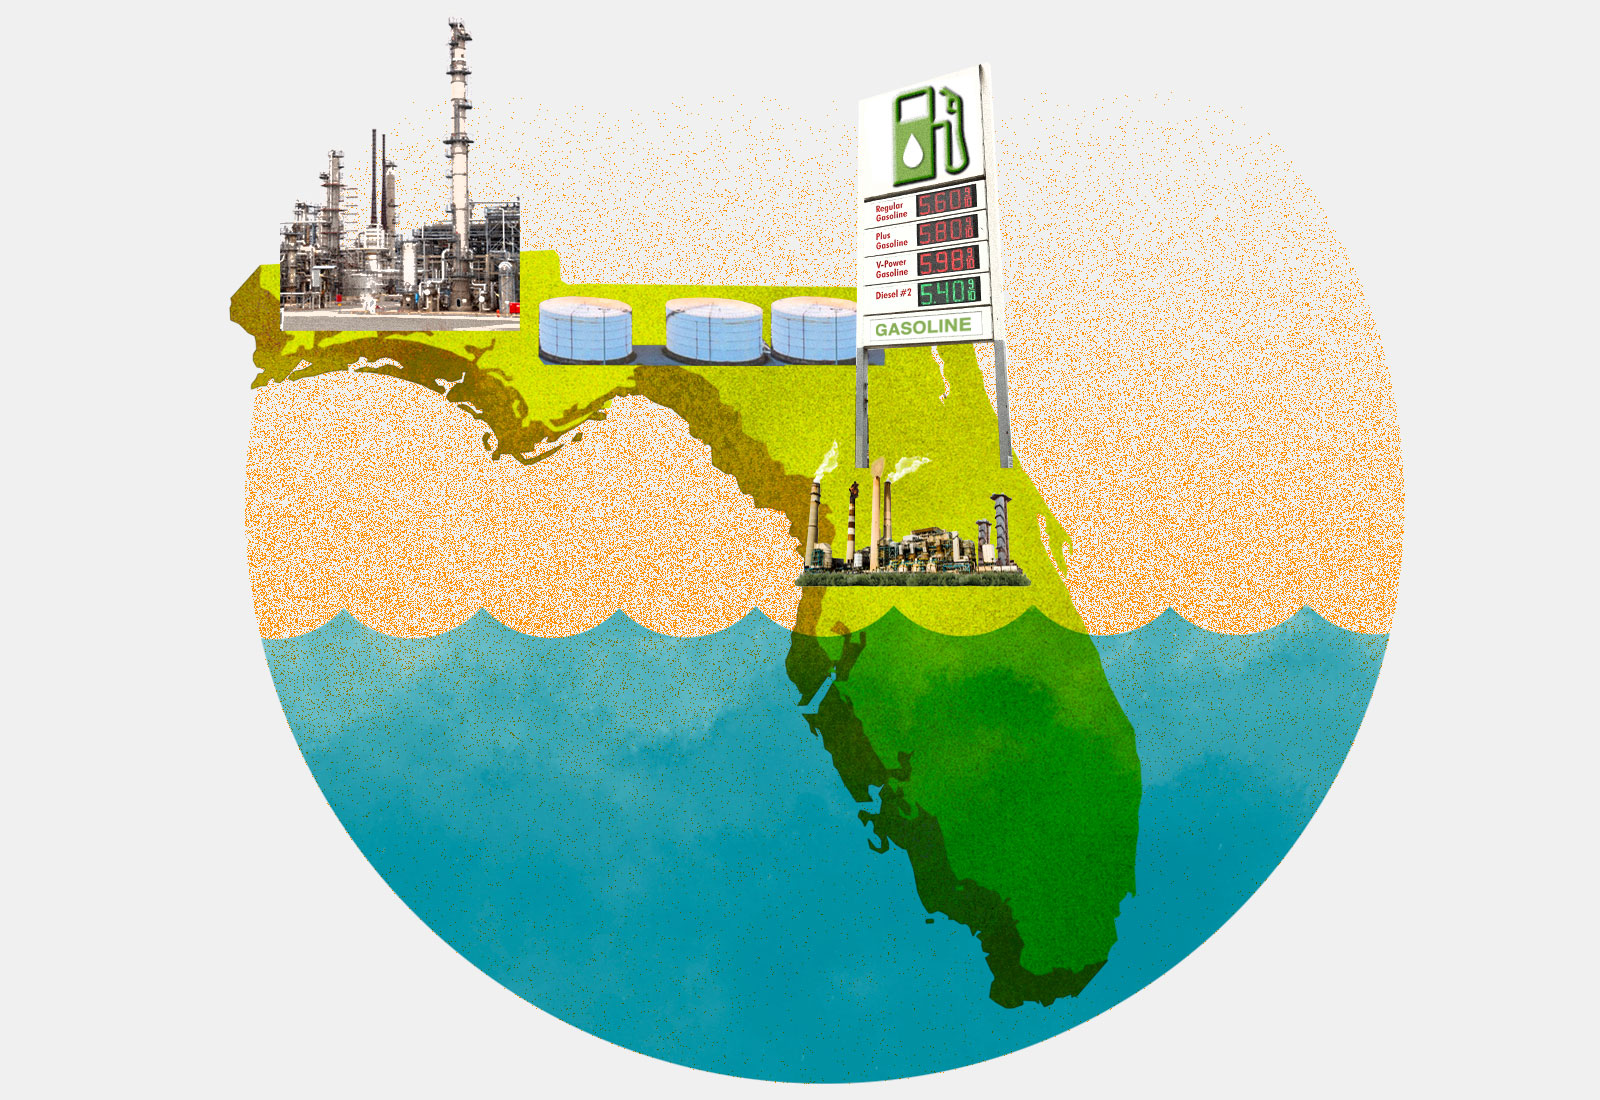 Collage: Florida, half underwater, with a gas station sign, fuel tanks, and refineries